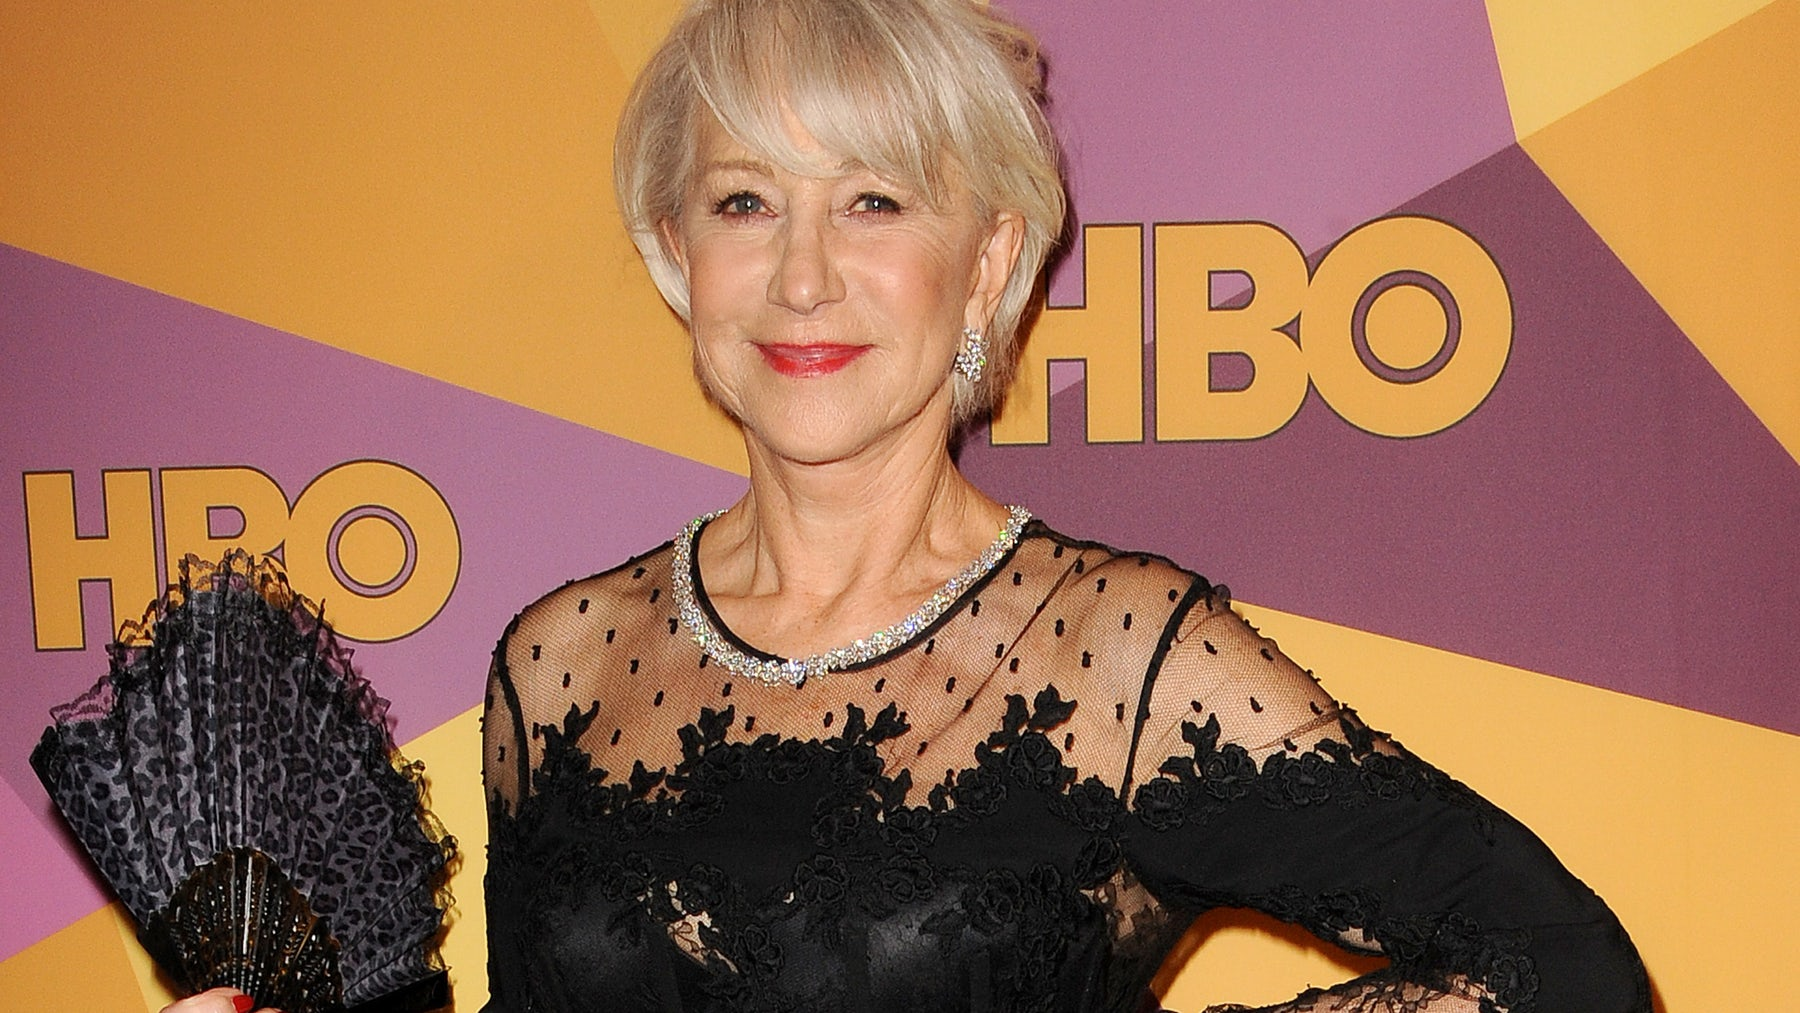 Helen Mirren in all-black at a Golden Globes after party | Source: Shutterstock